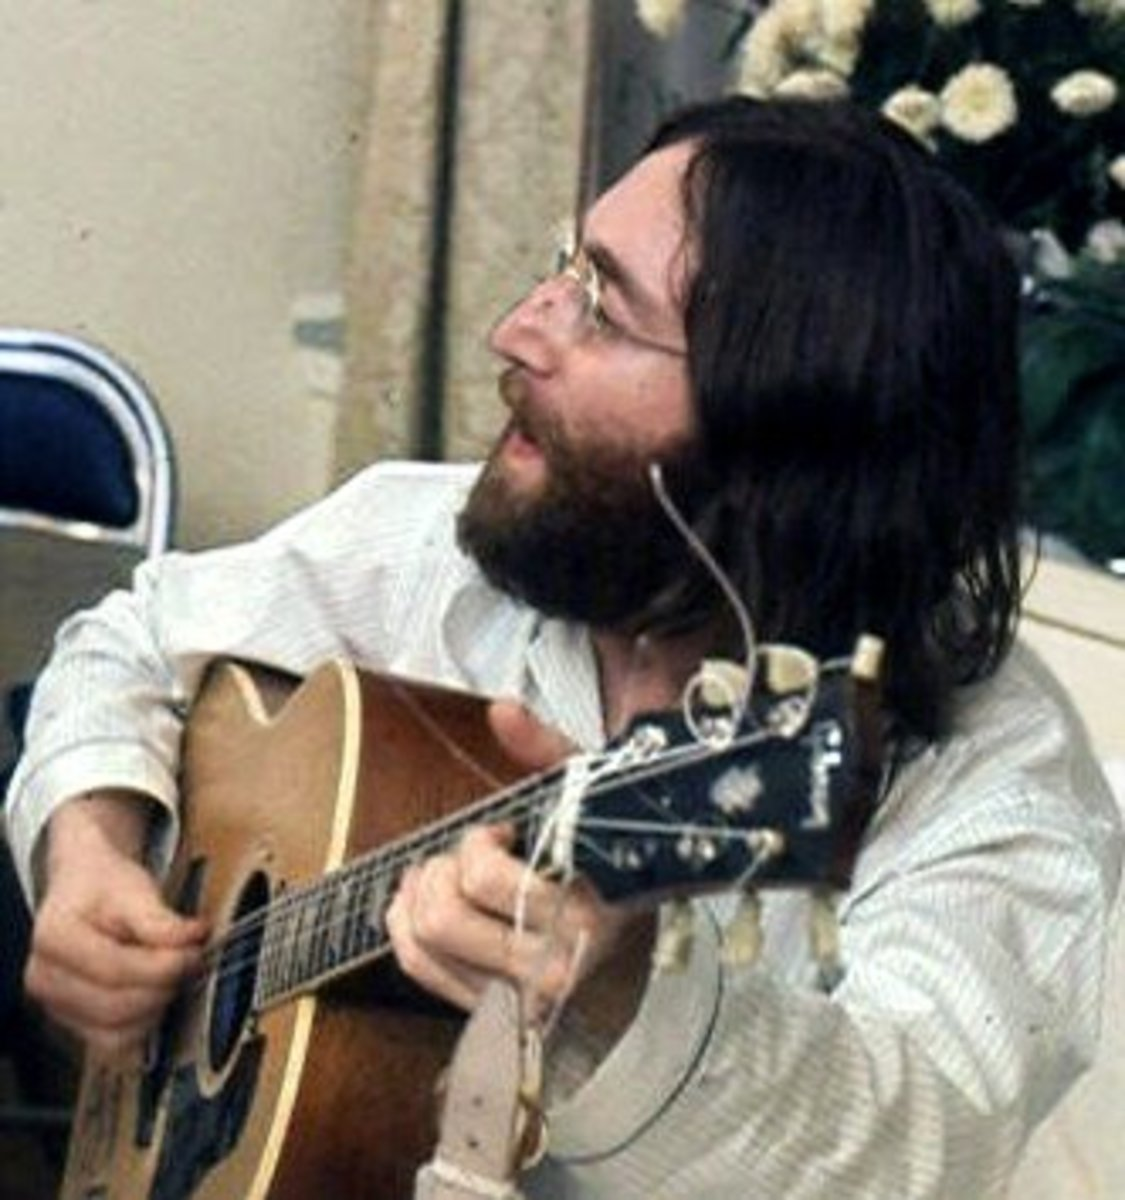 John Lennon wrote many socially conscious tunes.